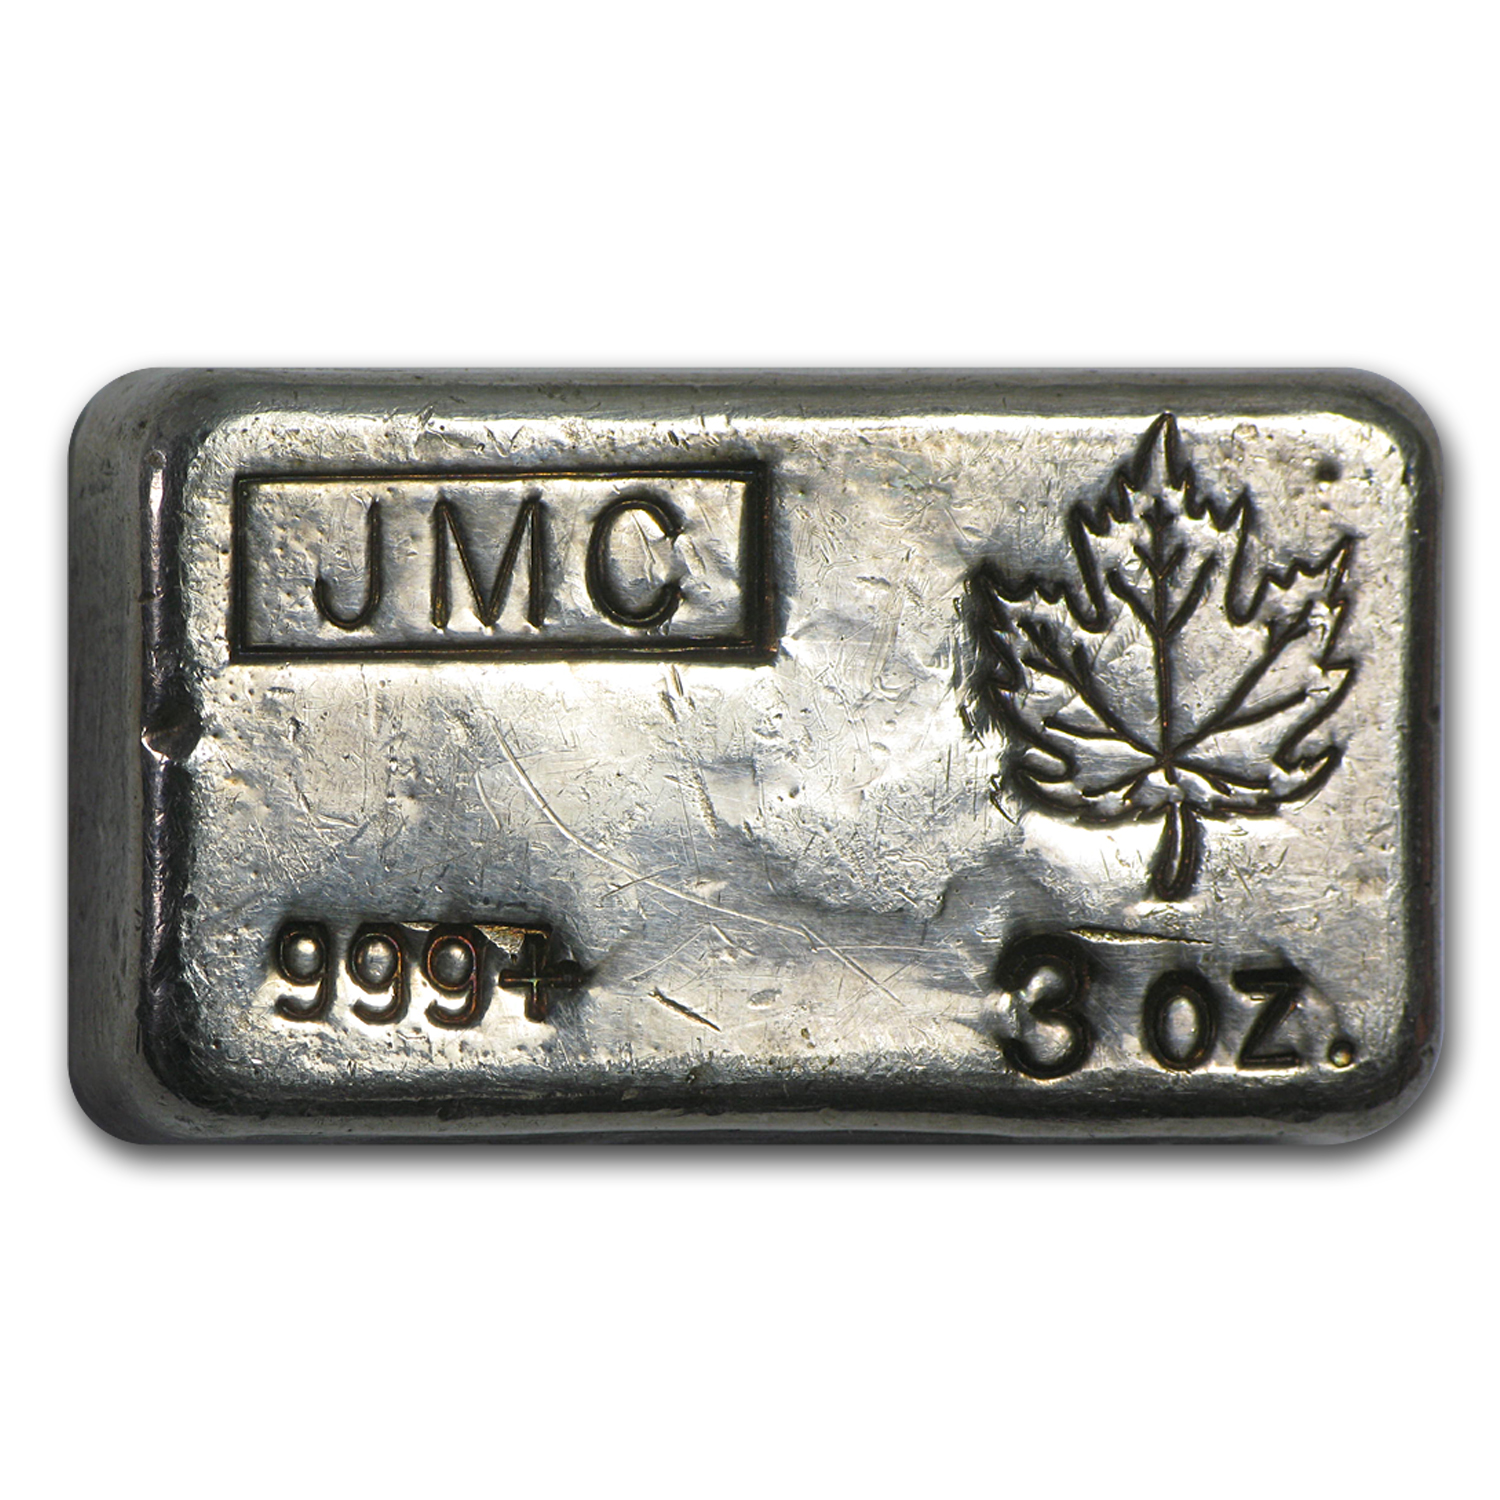 3 oz Silver Bar - Johnson Matthey Canada (Poured, Maple Leaf)